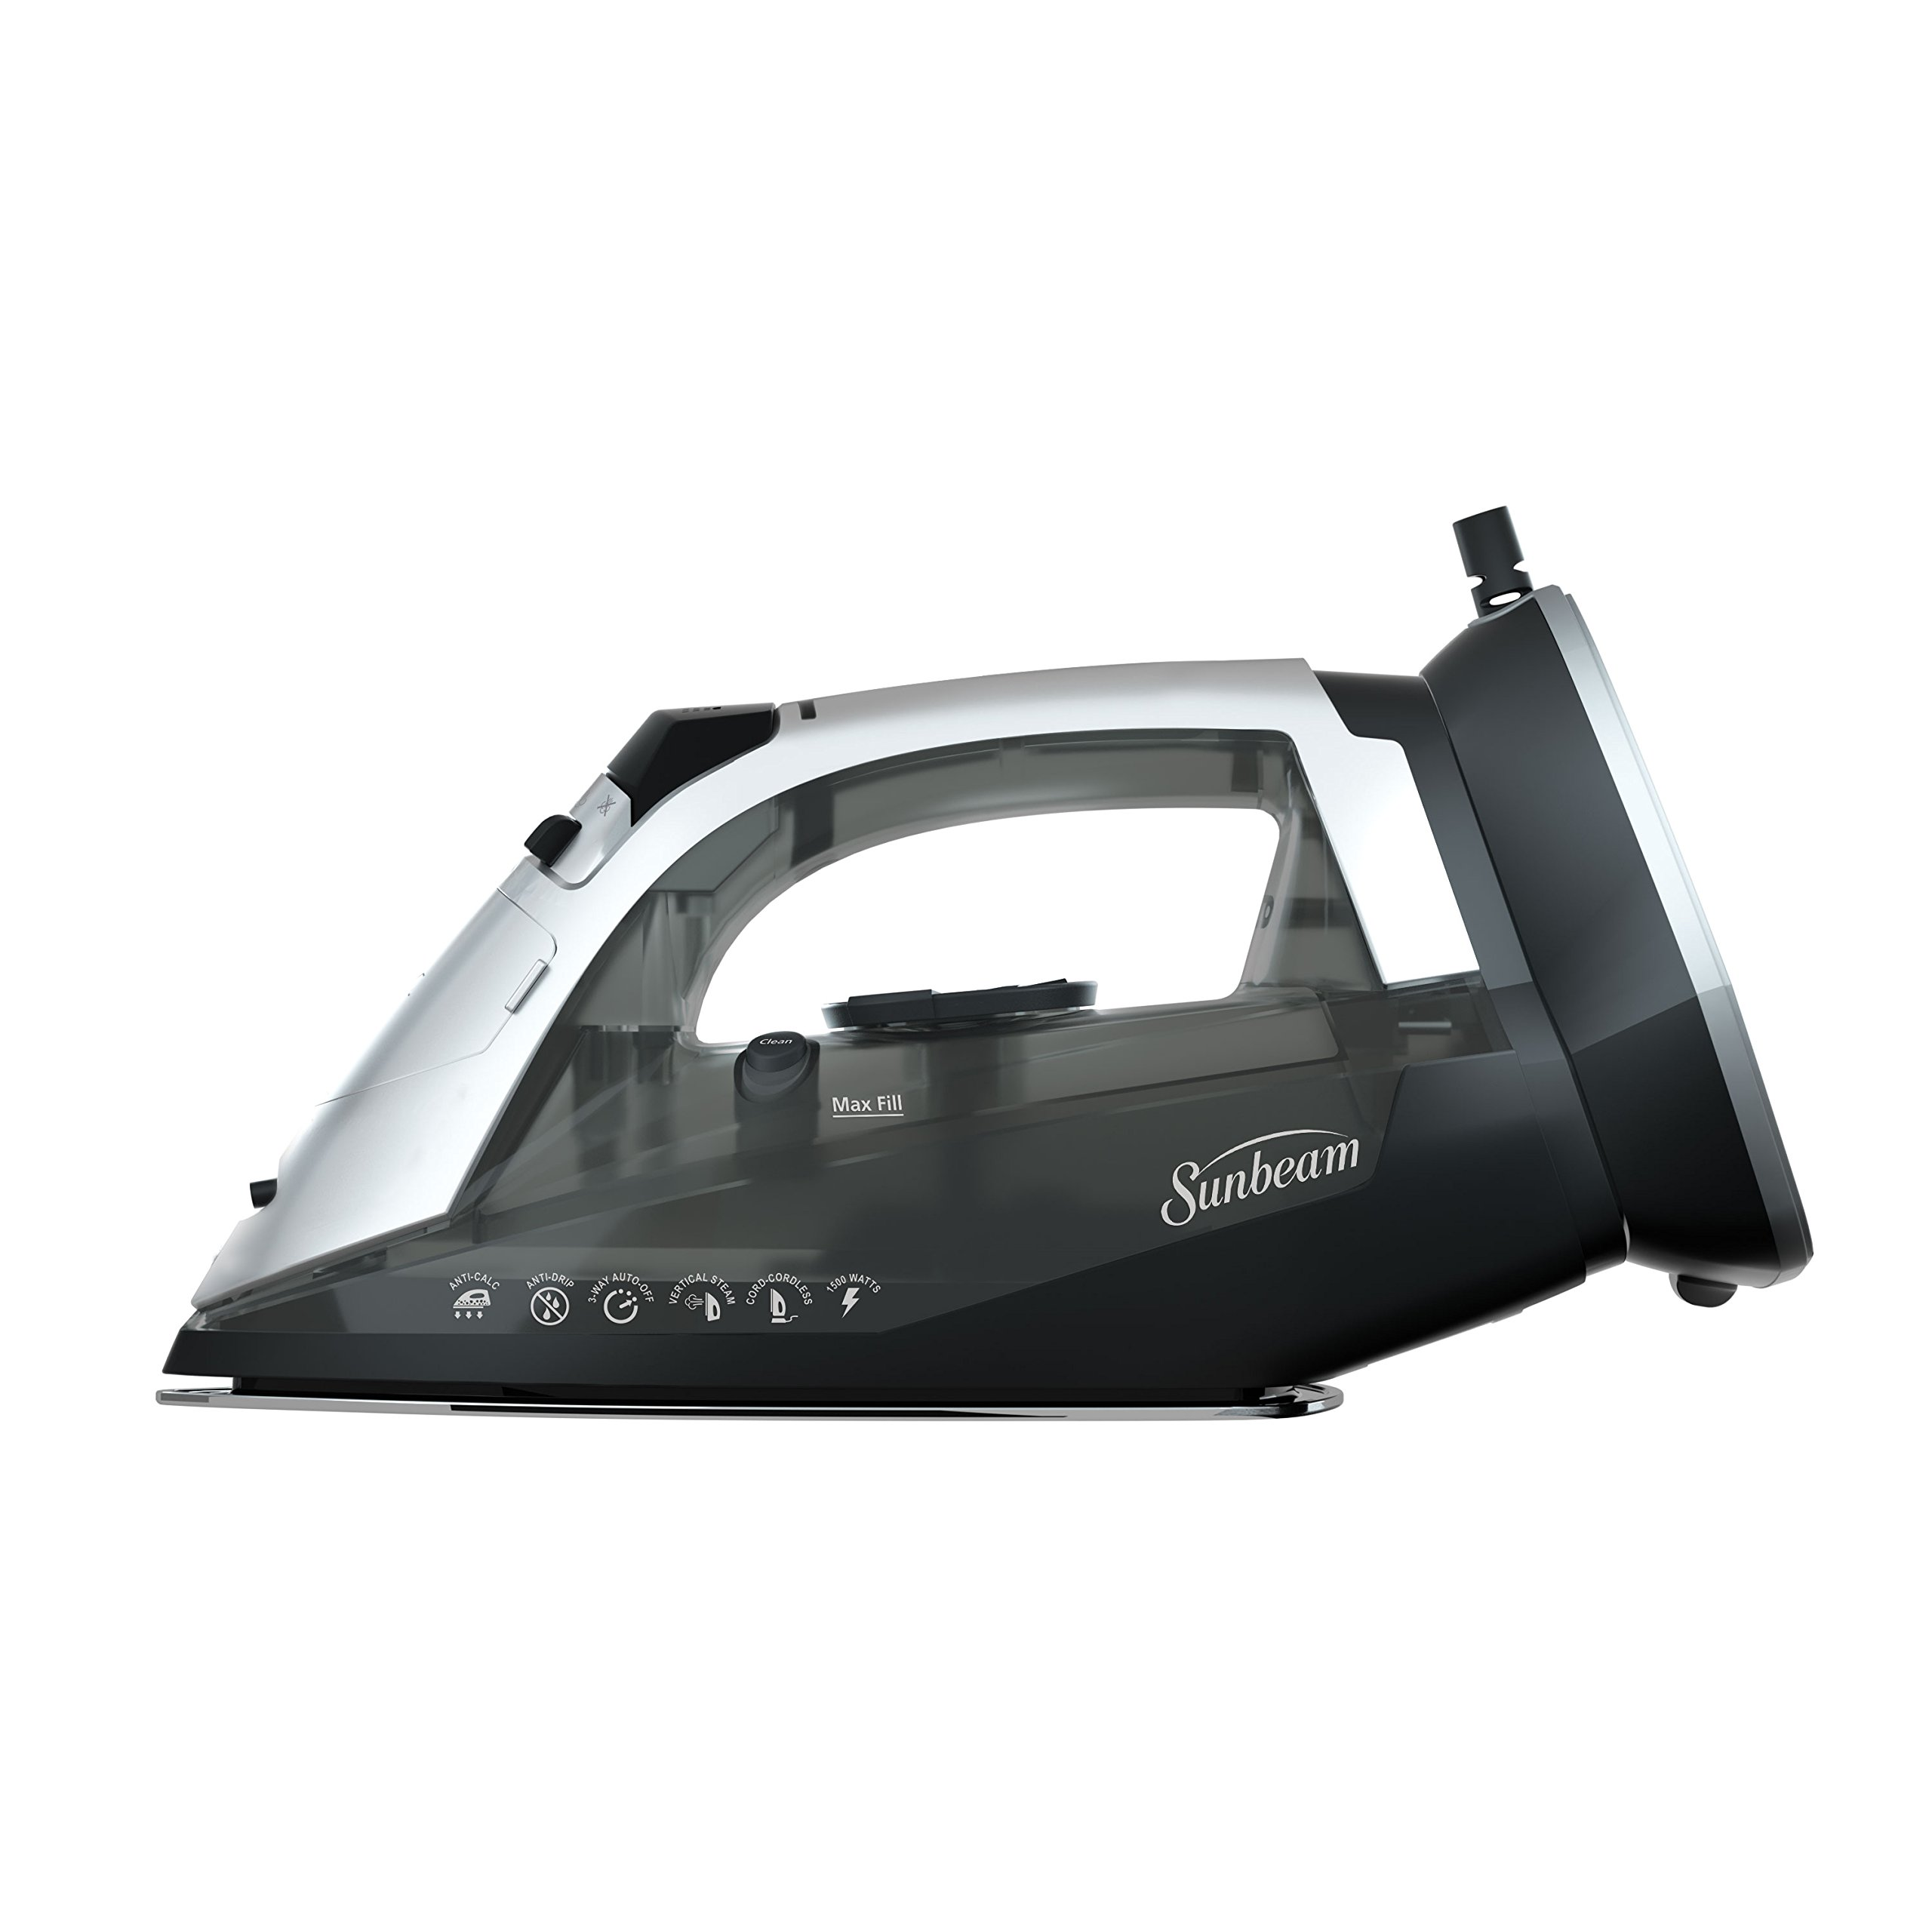 Sunbeam GCSBNC-101-000 Versa Glide Cordless/Corded Iron, Black